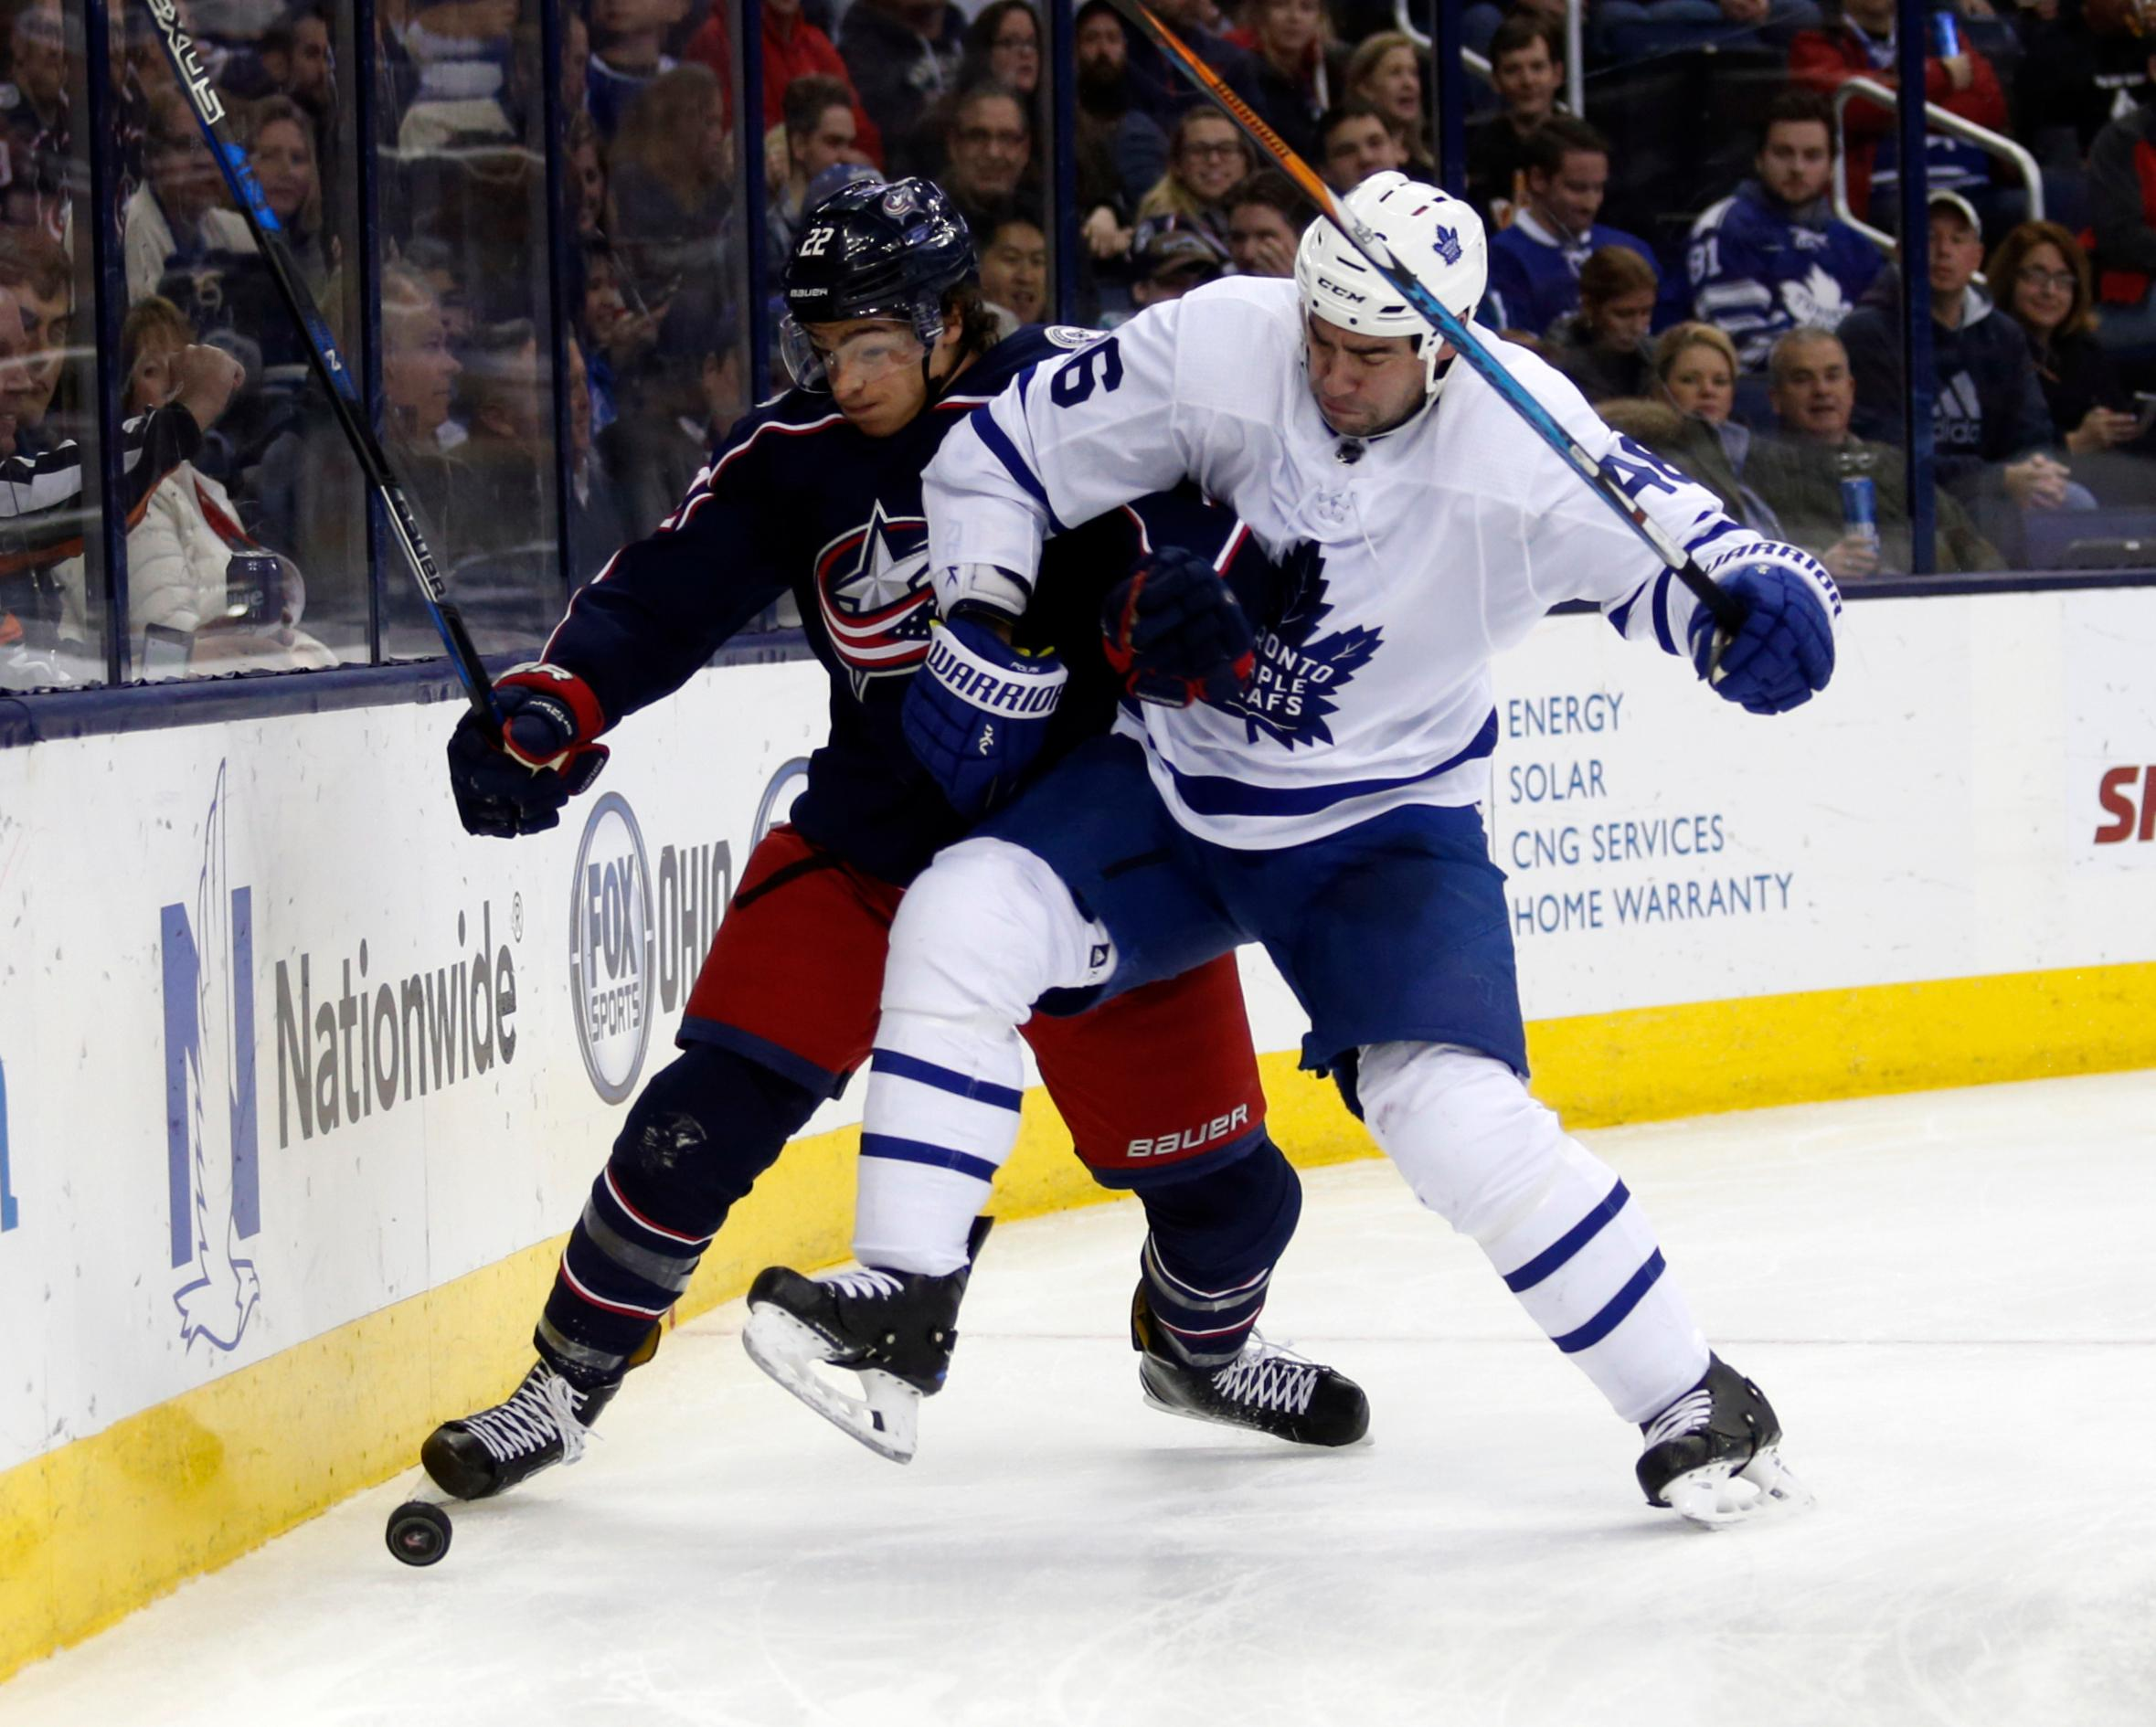 Toronto Maple Leafs defenseman Roman Polak, right, of the Czech Republic, collides with Columbus Blue Jackets forward Sonny Milano during the second of an NHL hockey game in Columbus, Ohio, Wednesday, Dec. 20, 2017. (AP Photo/Paul Vernon)